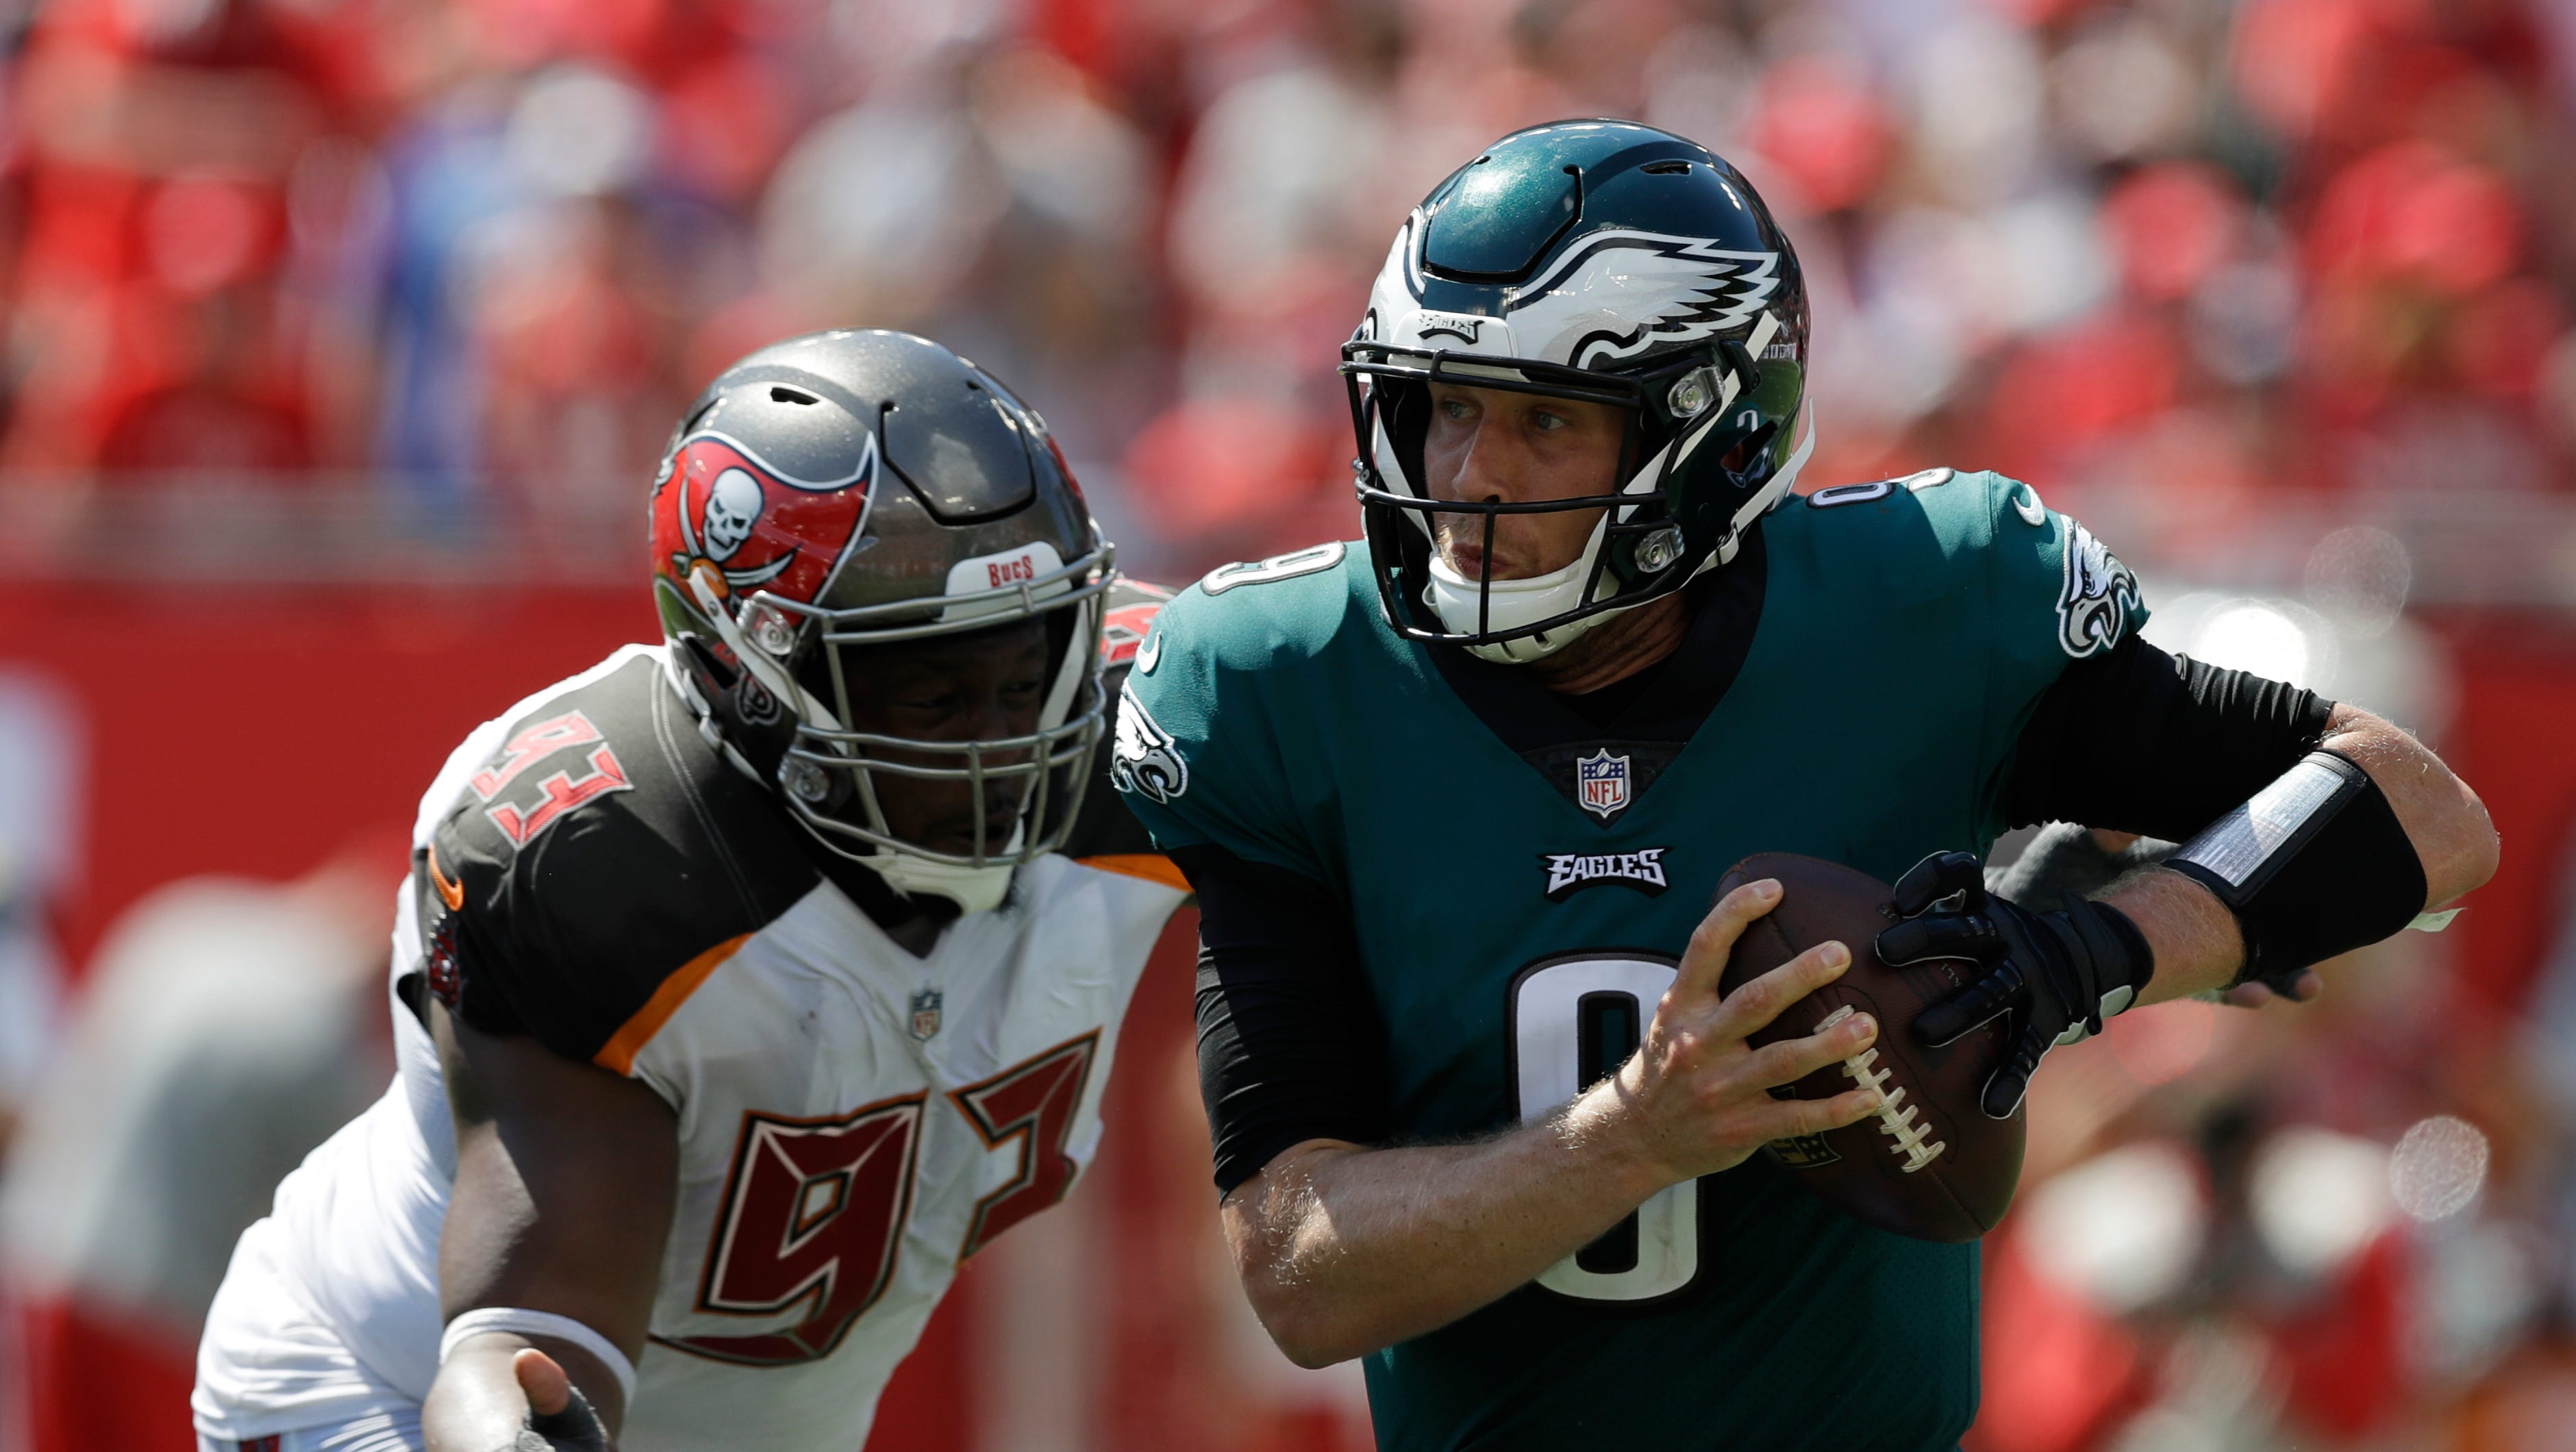 The Eagles can't rely on Carson Wentz to be their savior, at least early on.